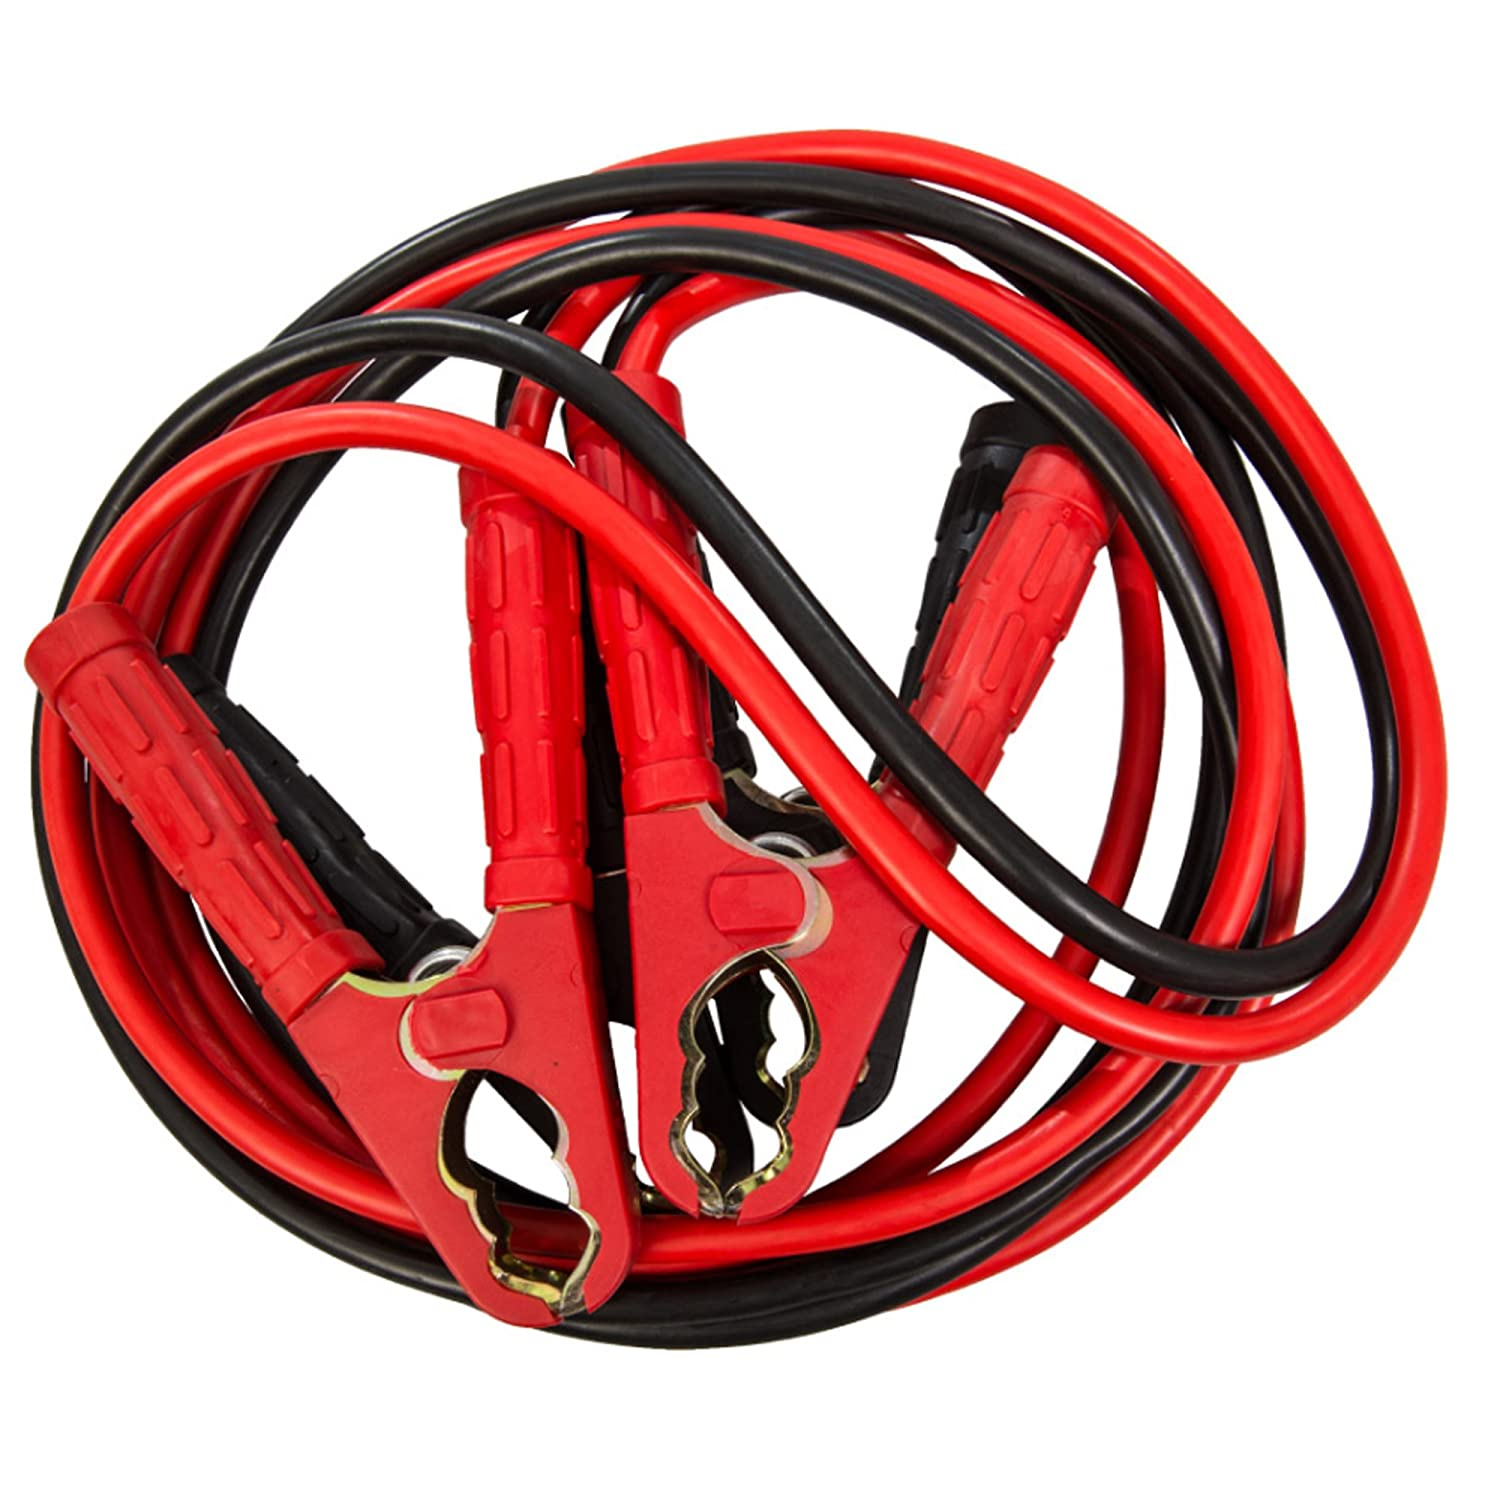 Wheels N Bits 35mm 5500cc Car Van Truck Boat Tractor Jump Leads Booster Cables 1000AMP 12ft